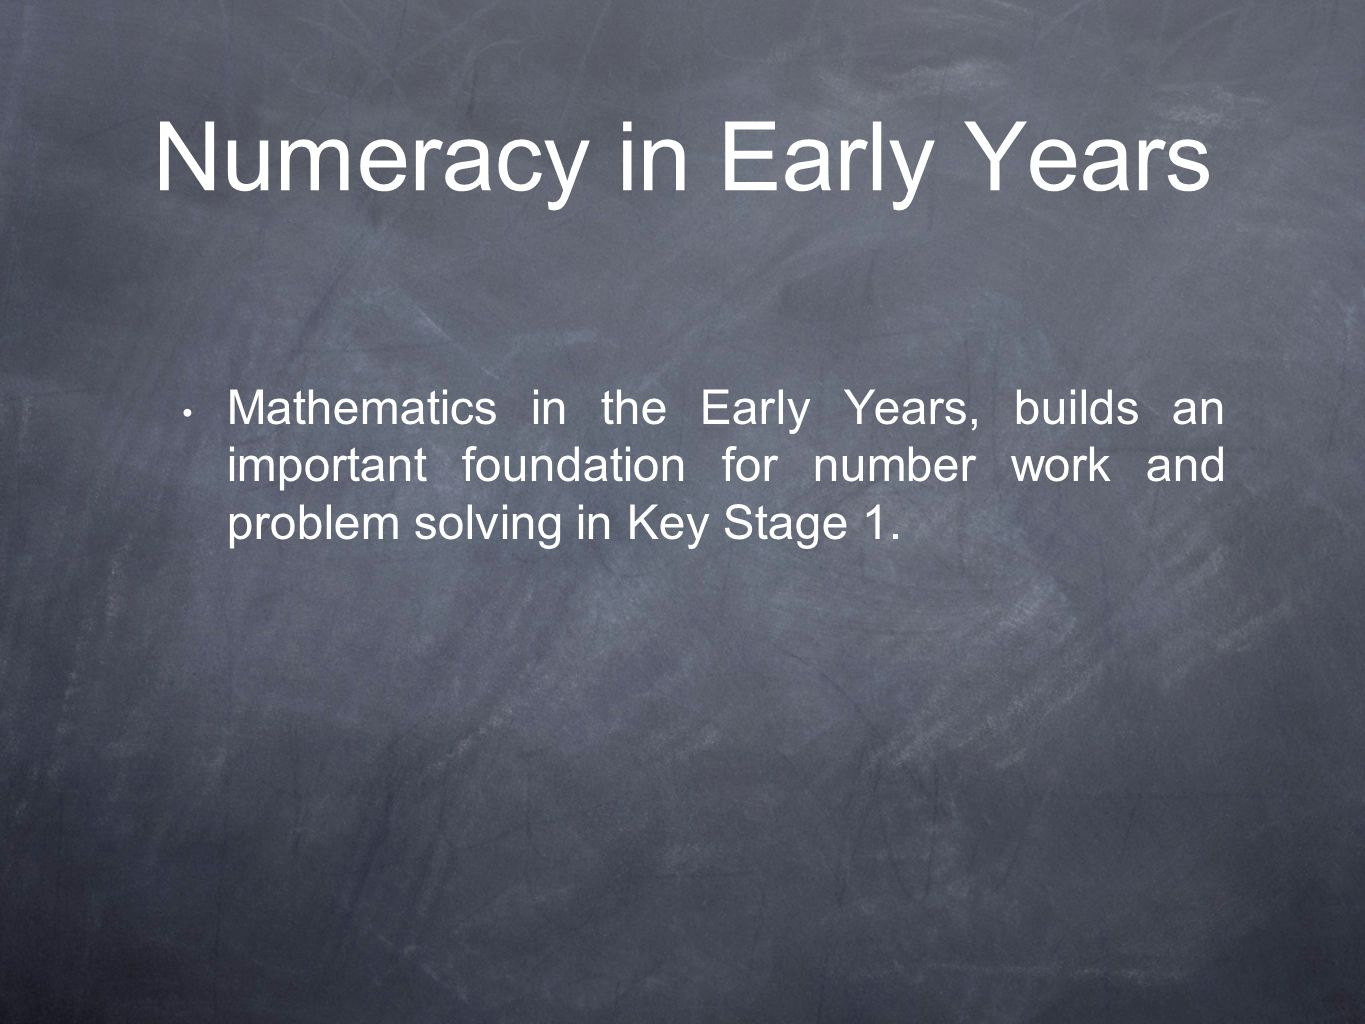 Numeracy in Early Years Mathematics in the Early Years, builds an important foundation for number work and problem solving in Key Stage 1.